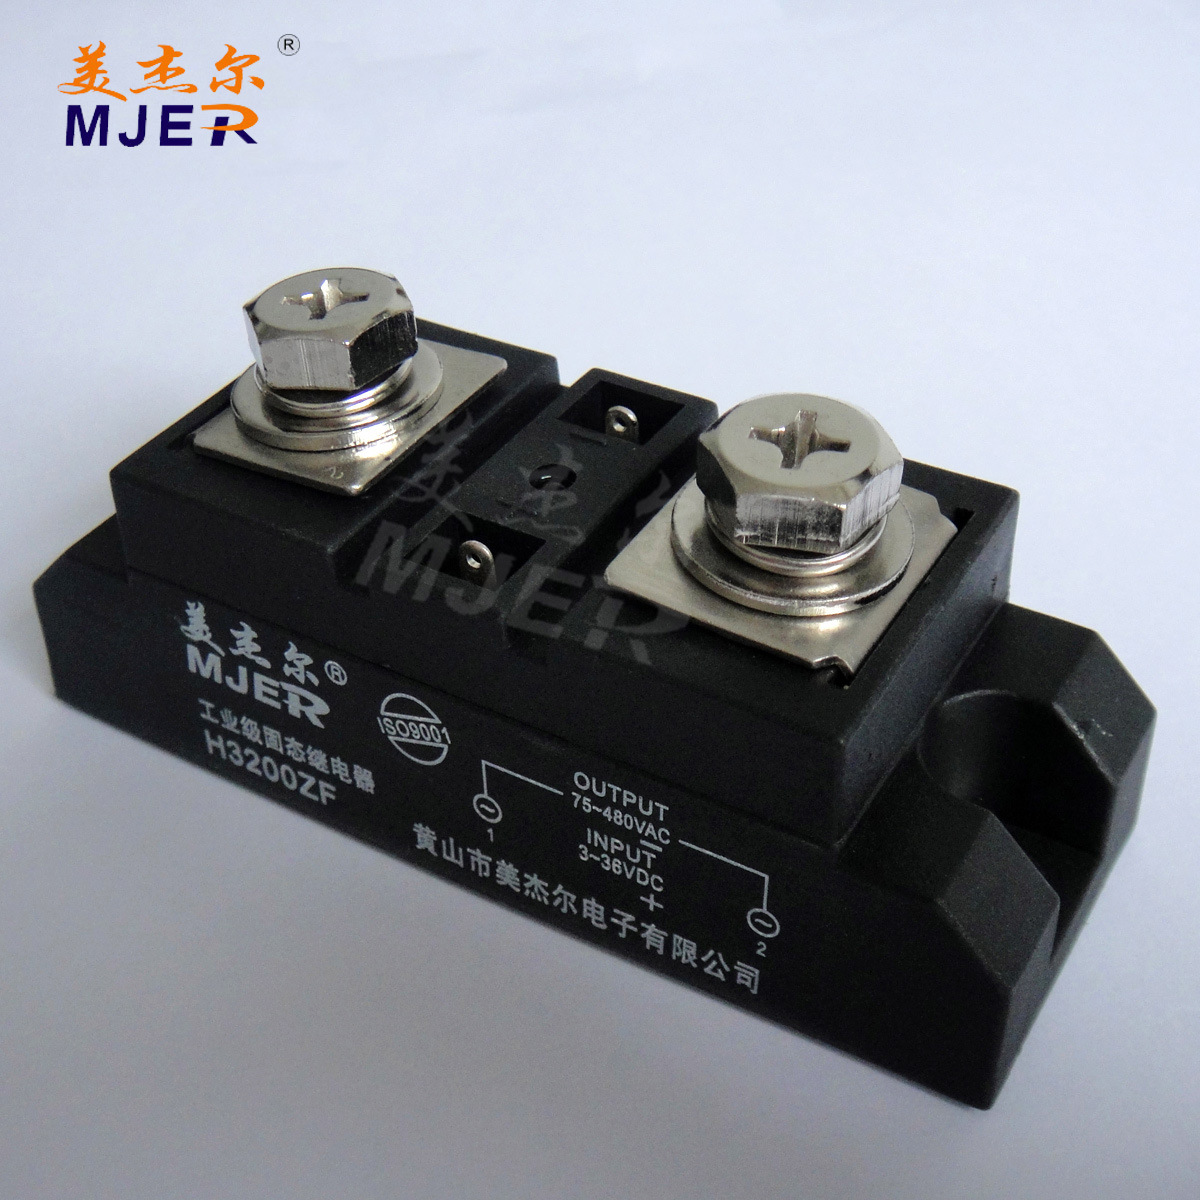 China Industrial Class Solid State Relay Ssr Dc Ac H3200zf Electronic Sillion Controller Model